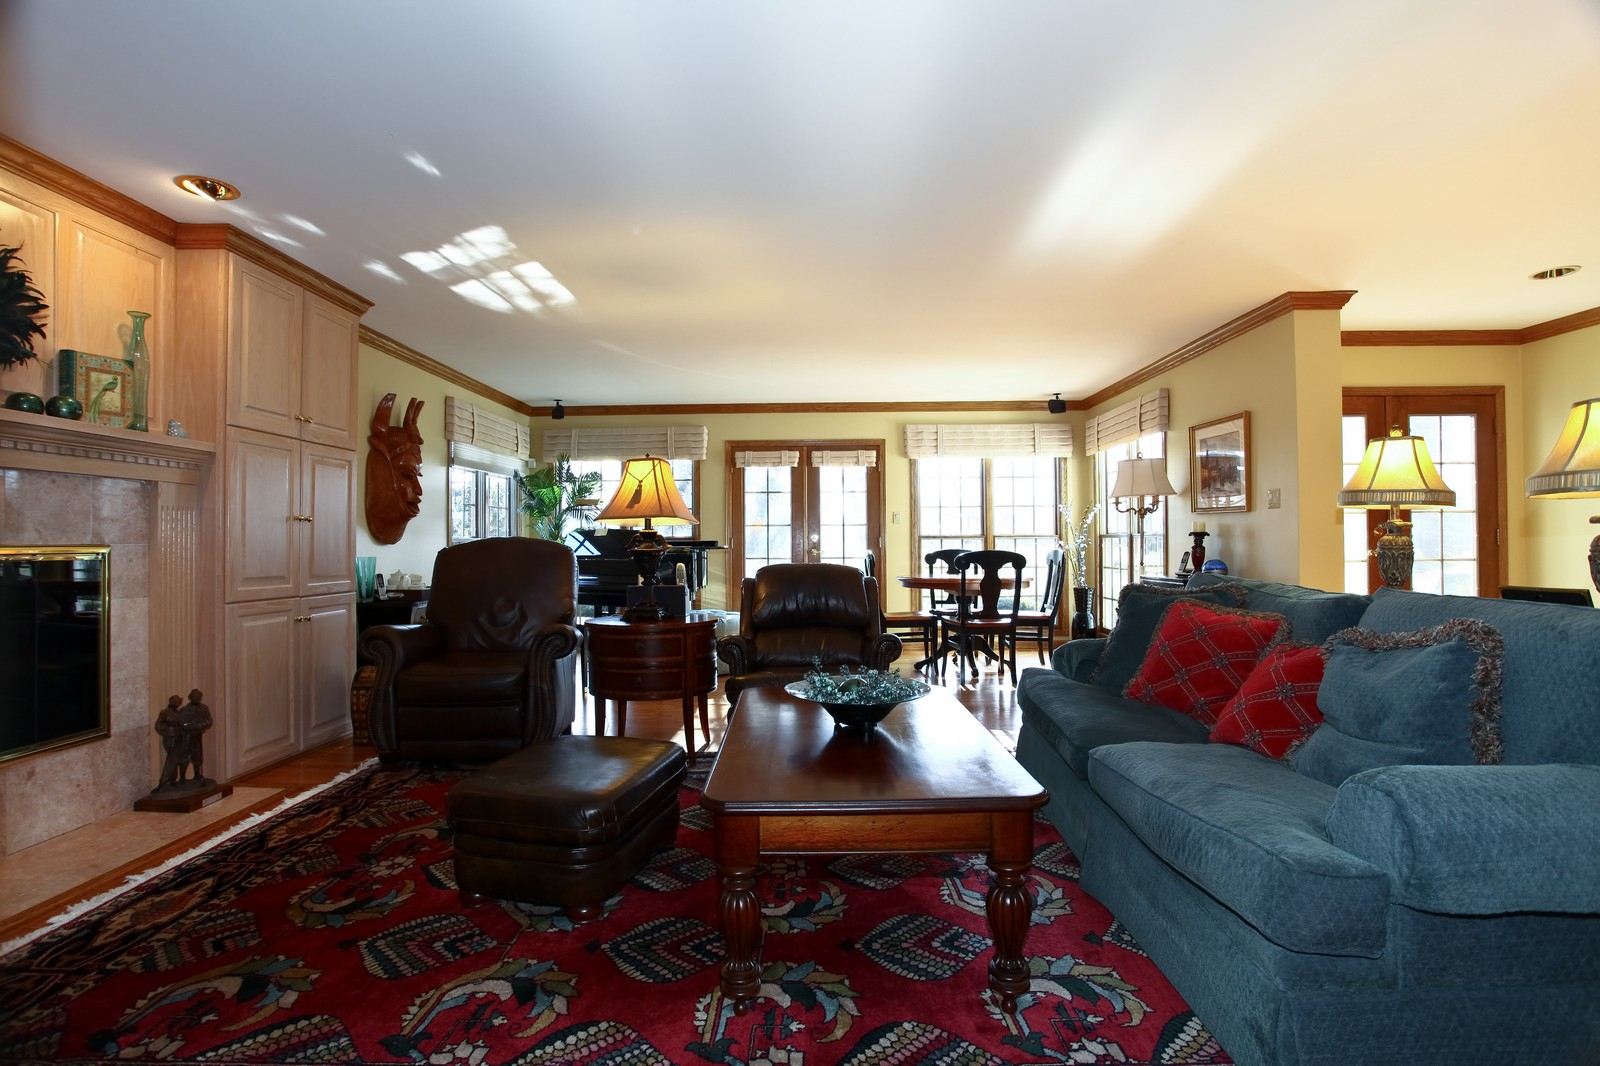 Real Estate Photography - 1032 Royal Bombay Court, Naperville, IL, 60563 - Living Room